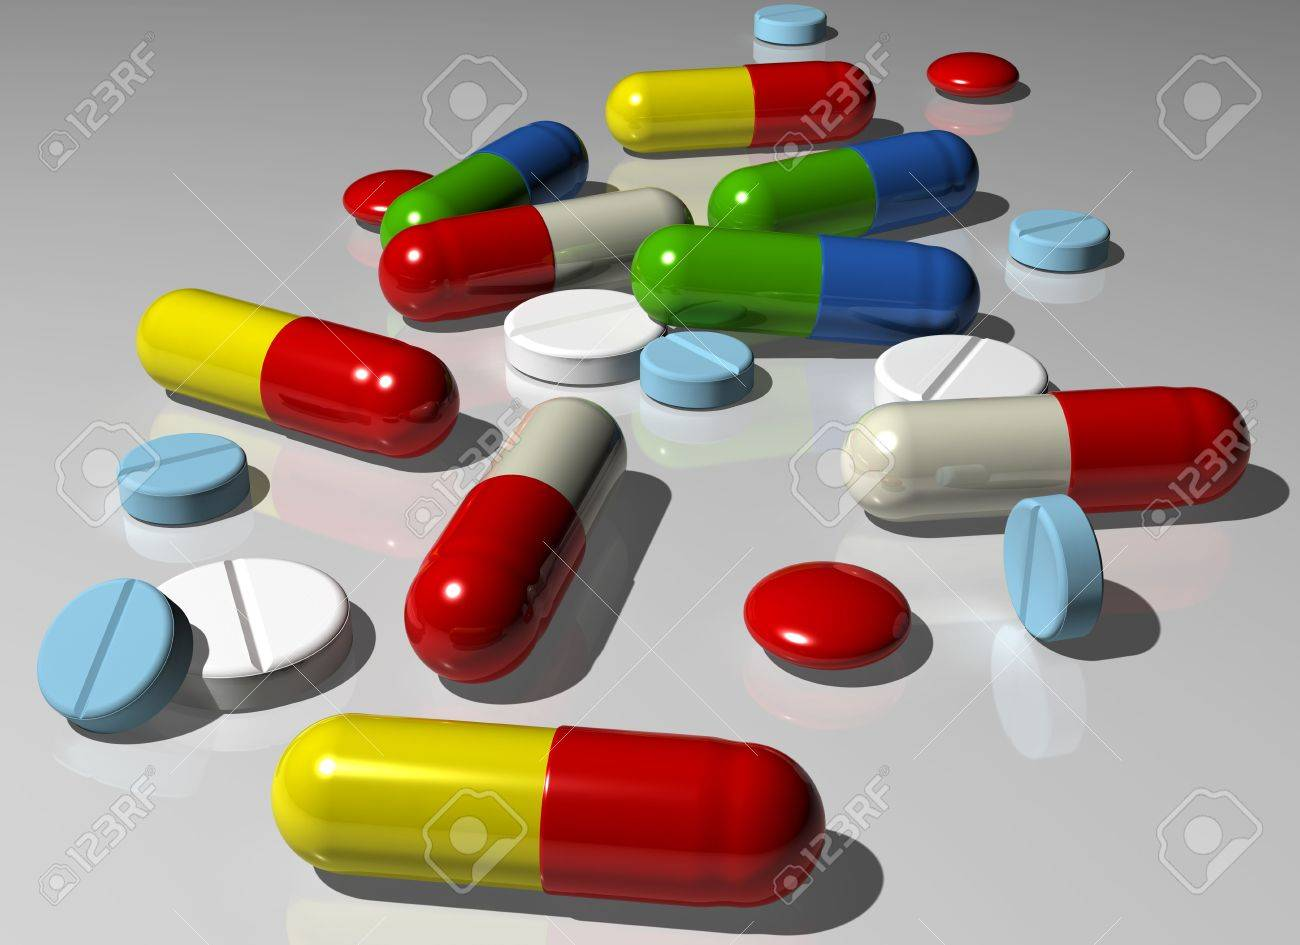 Illustration of various colorful capsules and pills Stock Photo - 3852764